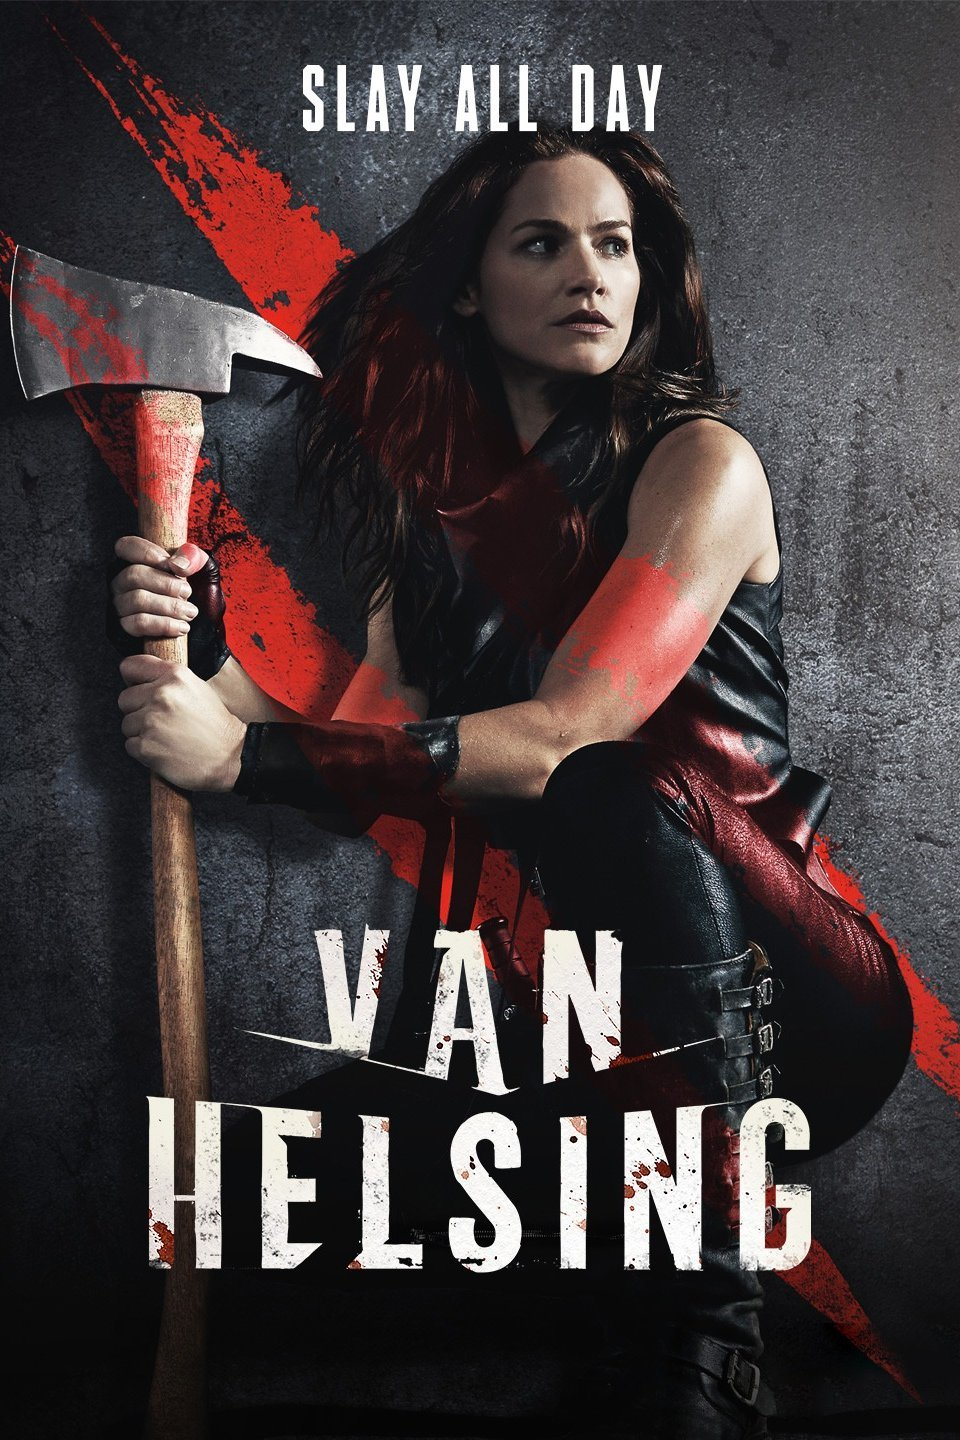 Van Helsing Season 2 Episode 12 Download HDTV Smalllmkv